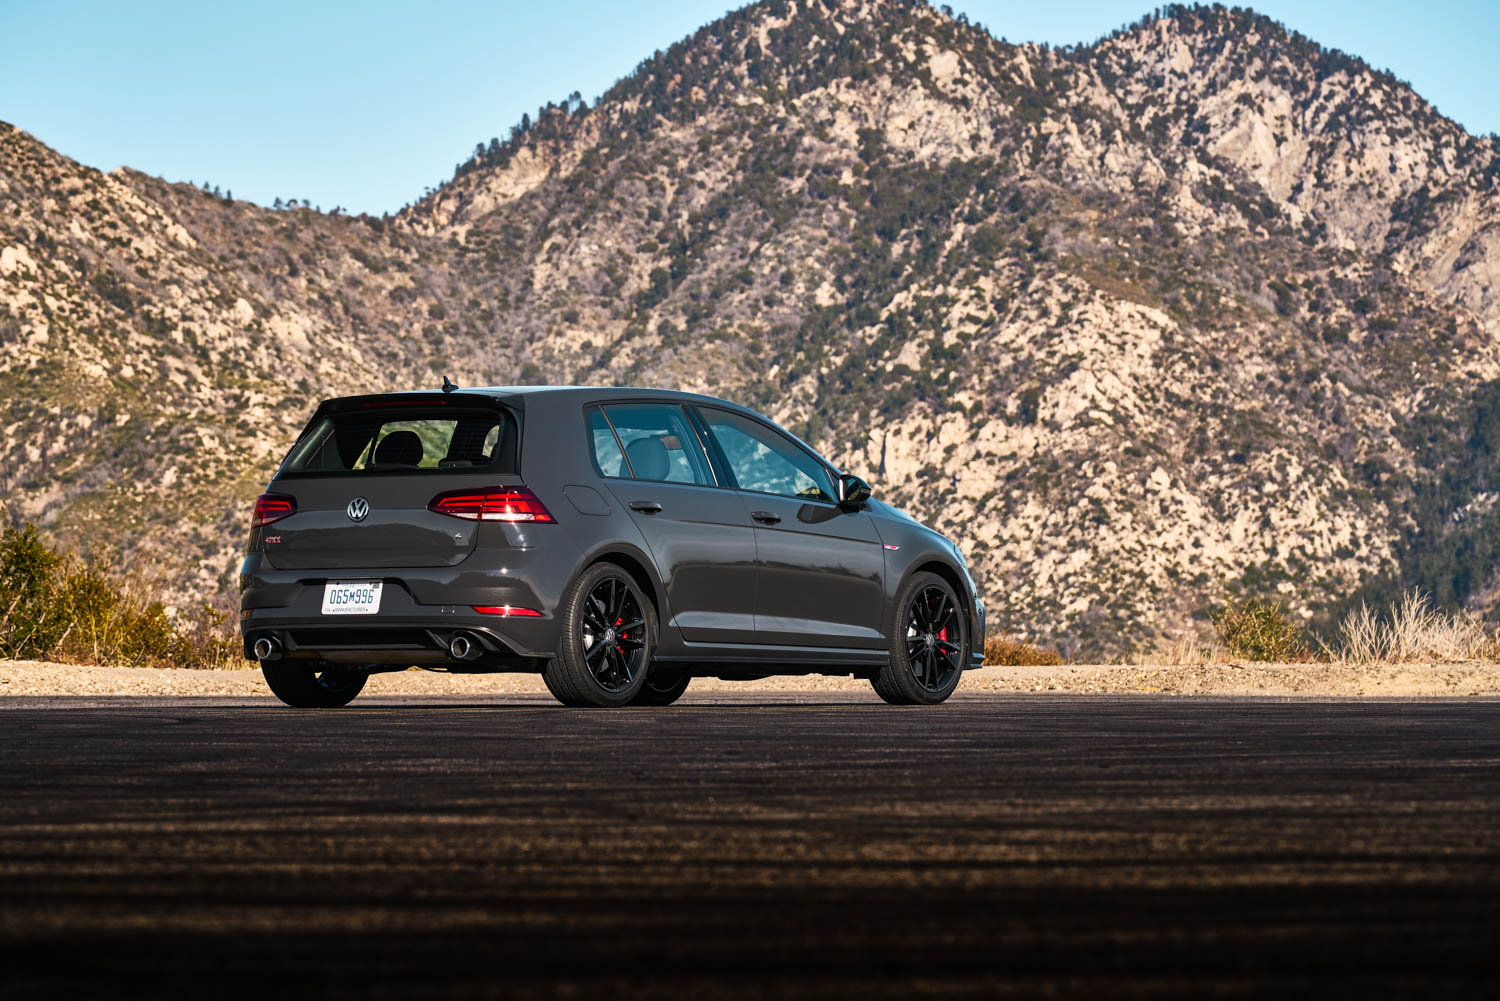 2019 Volkswagen GTI Rabbit Edition rear 3/4